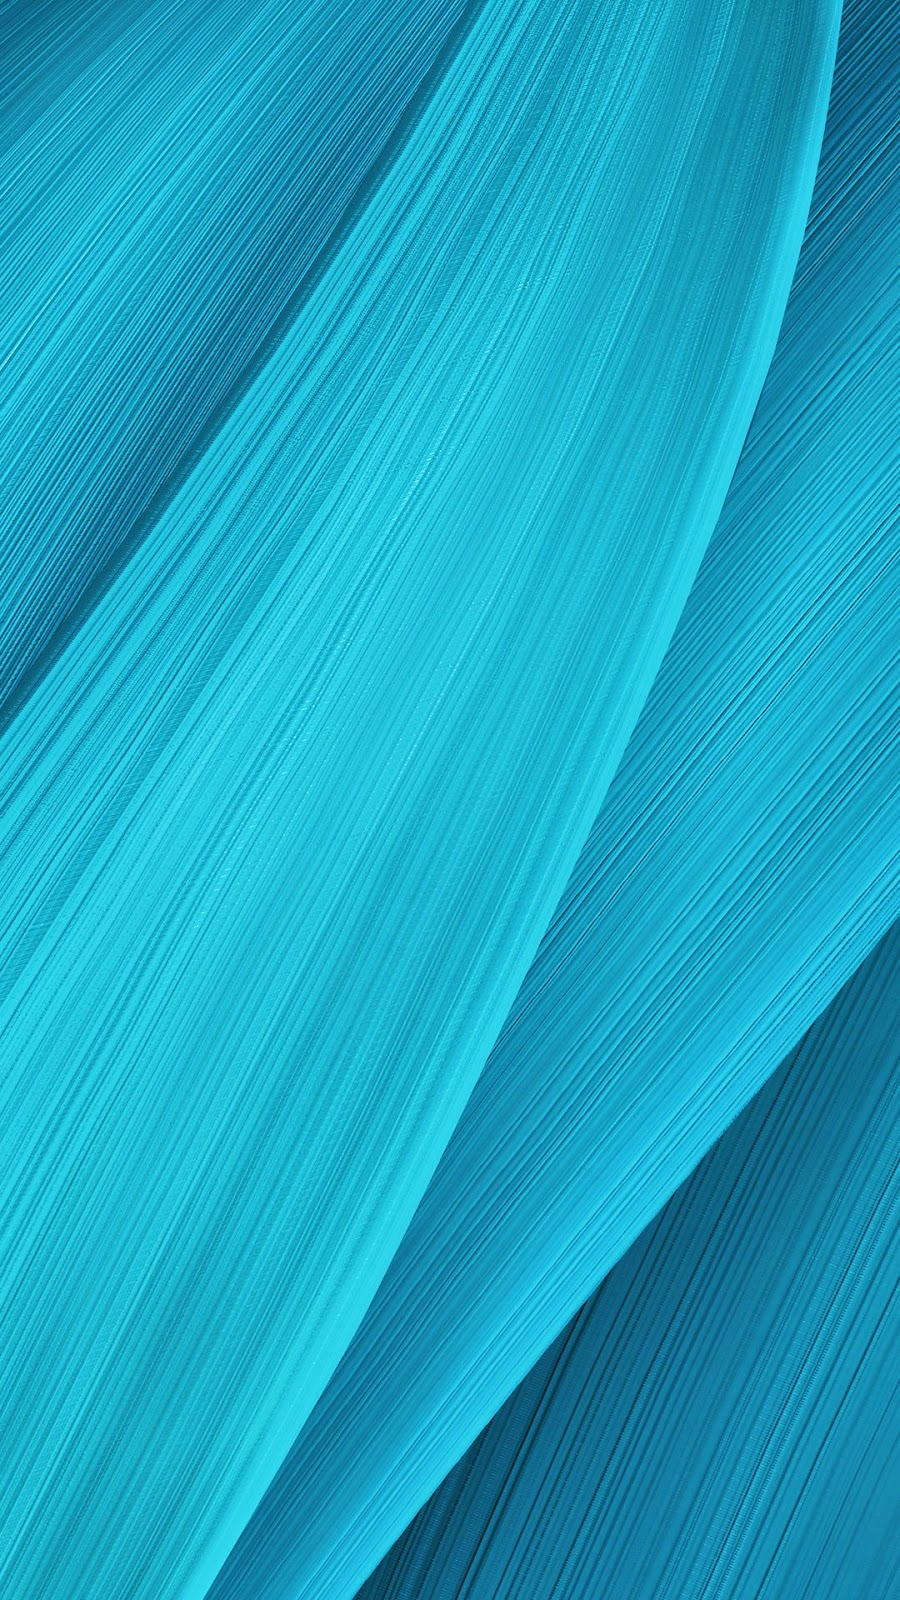 Asus Zenfone 2 Wallpaper